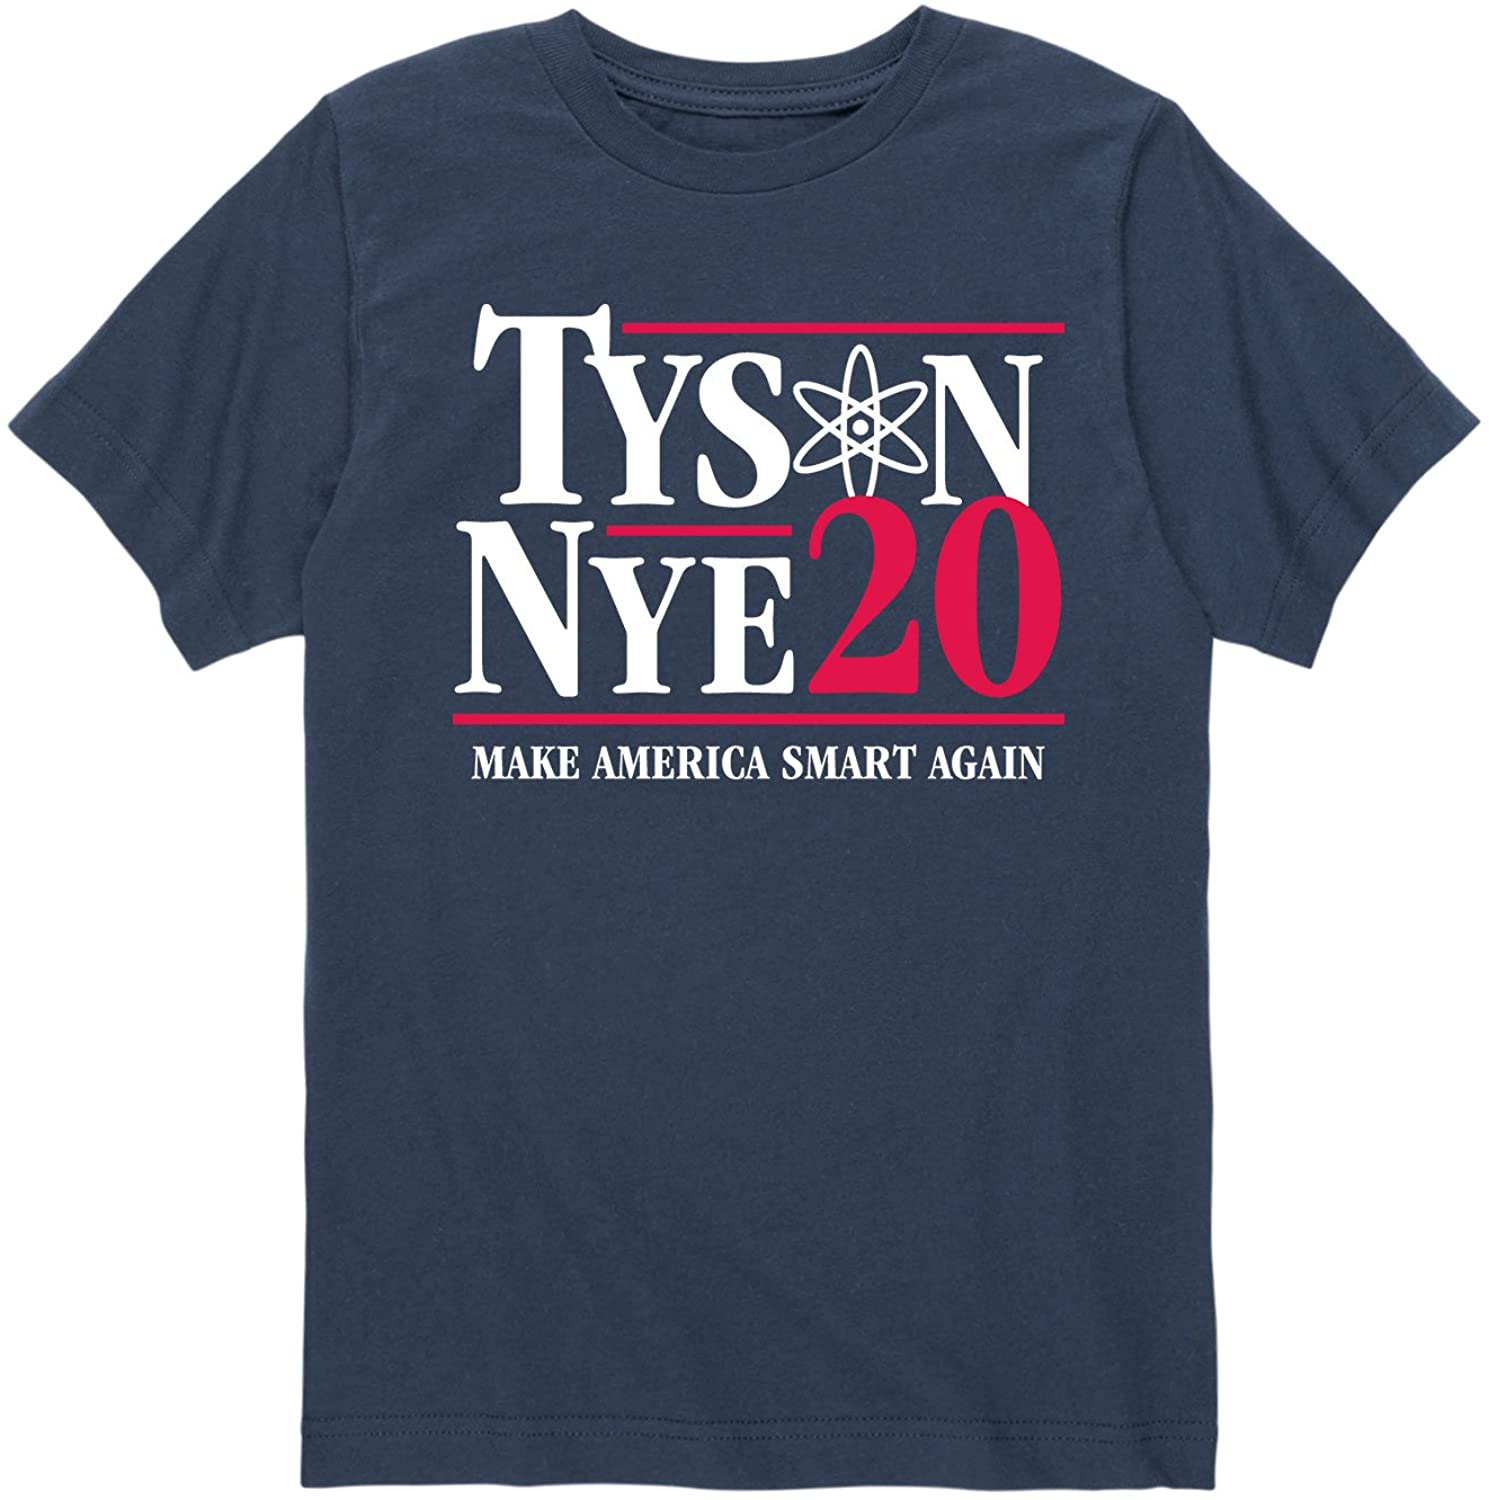 Instant Message Tyson Nye 2020 - Youth Short Sleeve Graphic T-Shirt